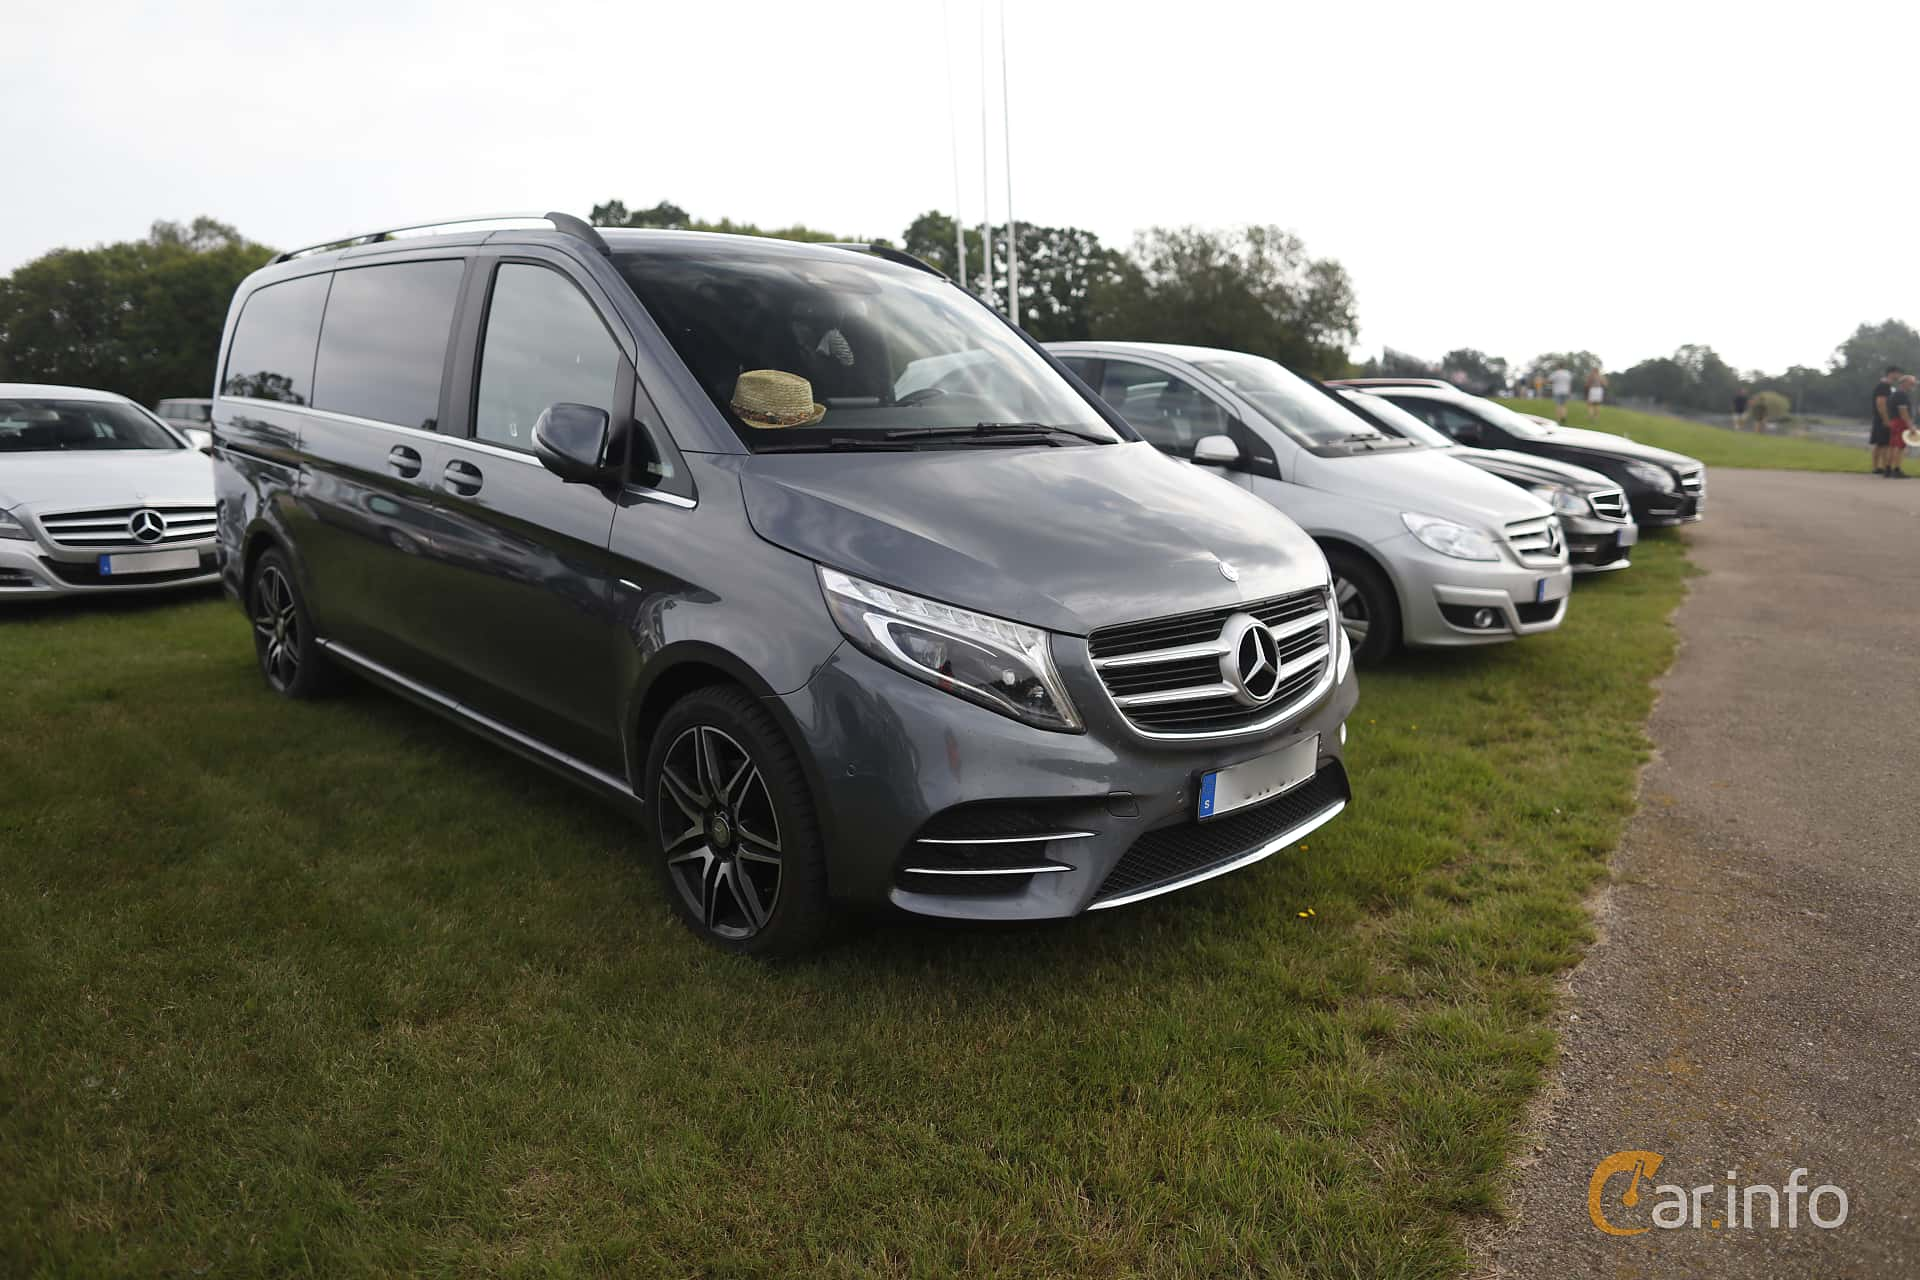 Front/Side  of Mercedes-Benz V 250 d 4MATIC  7G-Tronic Plus, 190ps, 2017 at Autoropa Racing day Knutstorp 2019